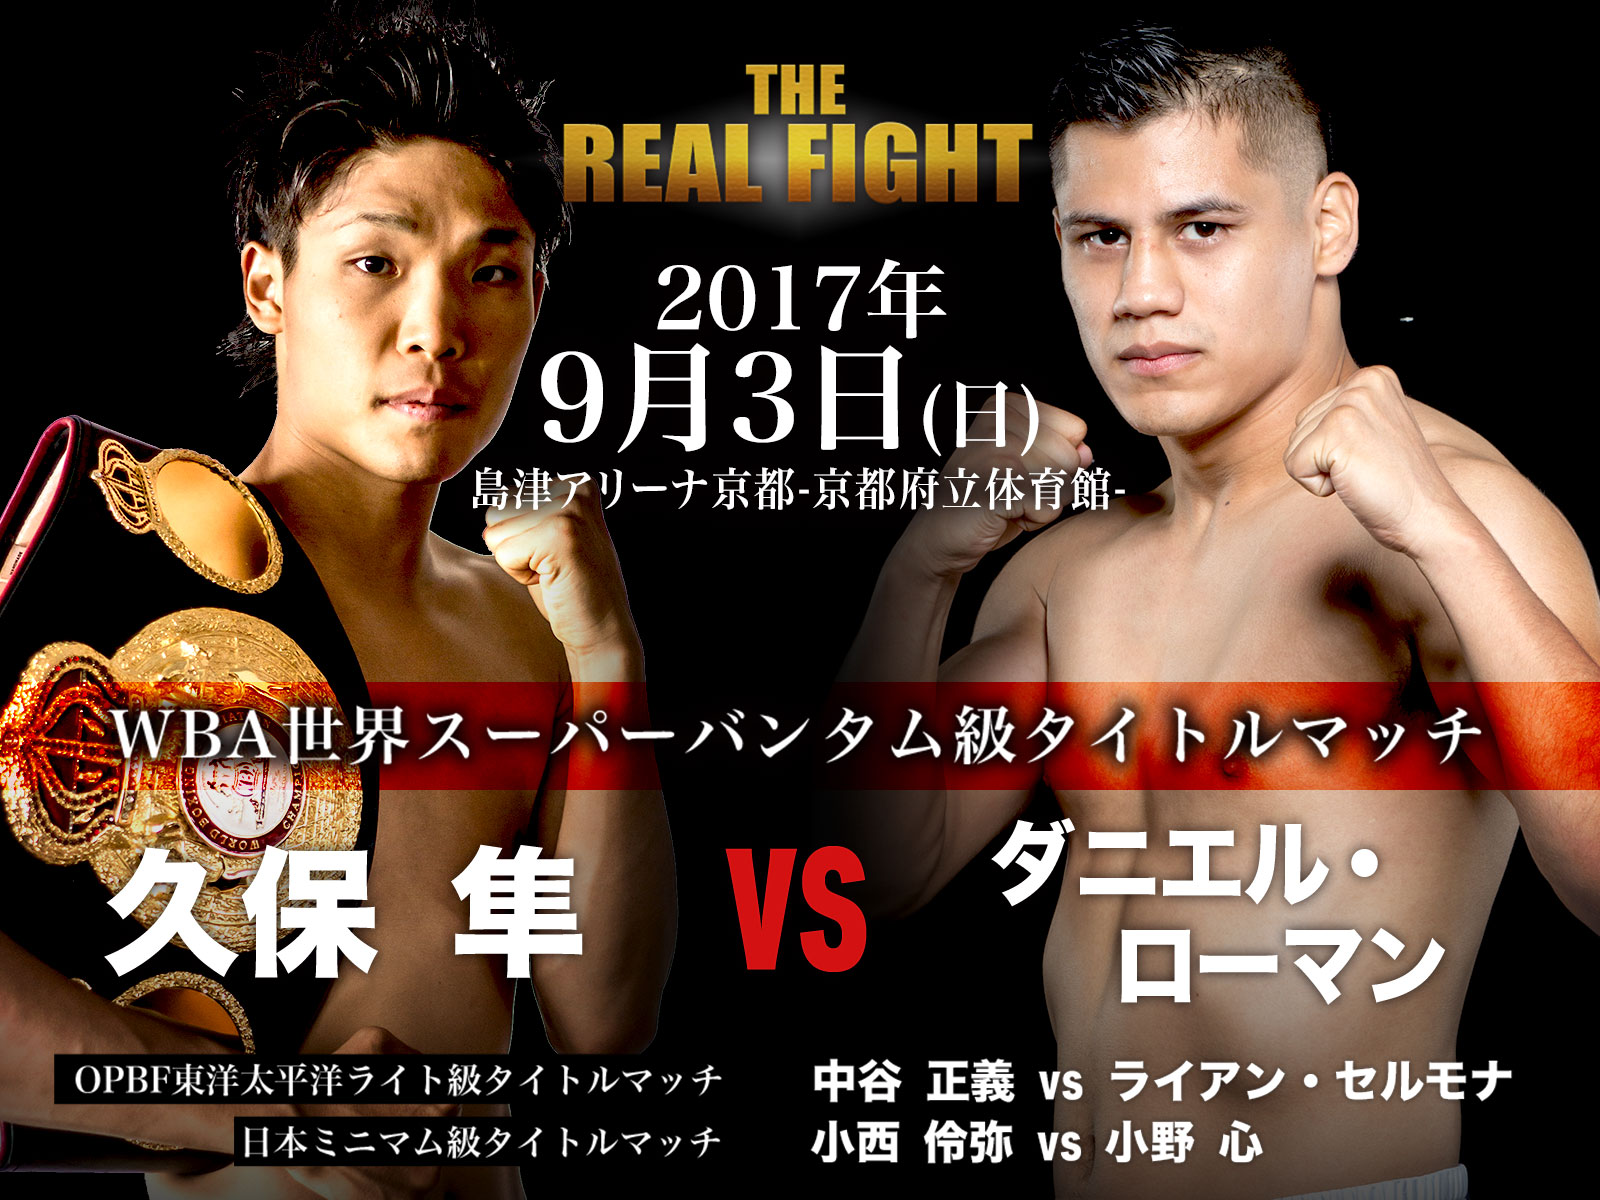 2017/9/3 THE REAL FIGHT[世界] 島津アリーナ京都